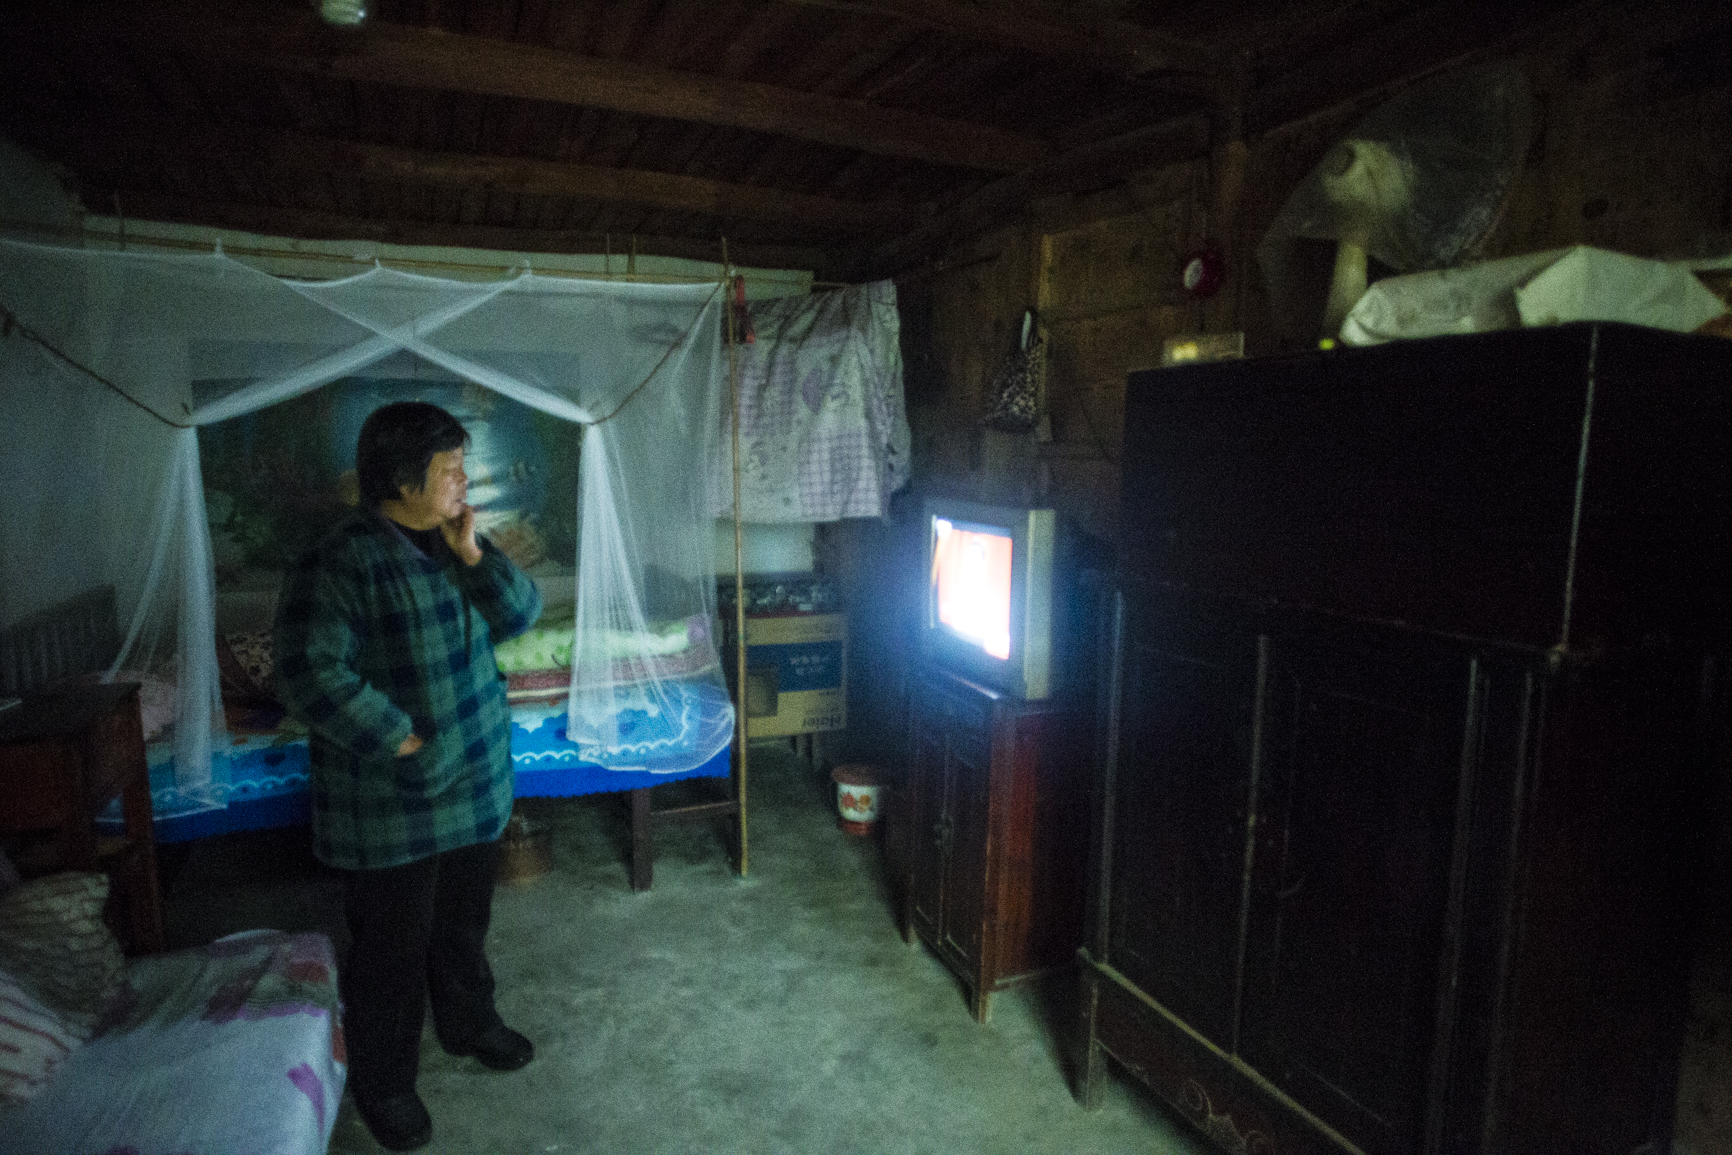 MG_1416 Many elders spend their day watching television instead of working, because the youngsters sends money home while working in the big cities. Photo by Ann Wang